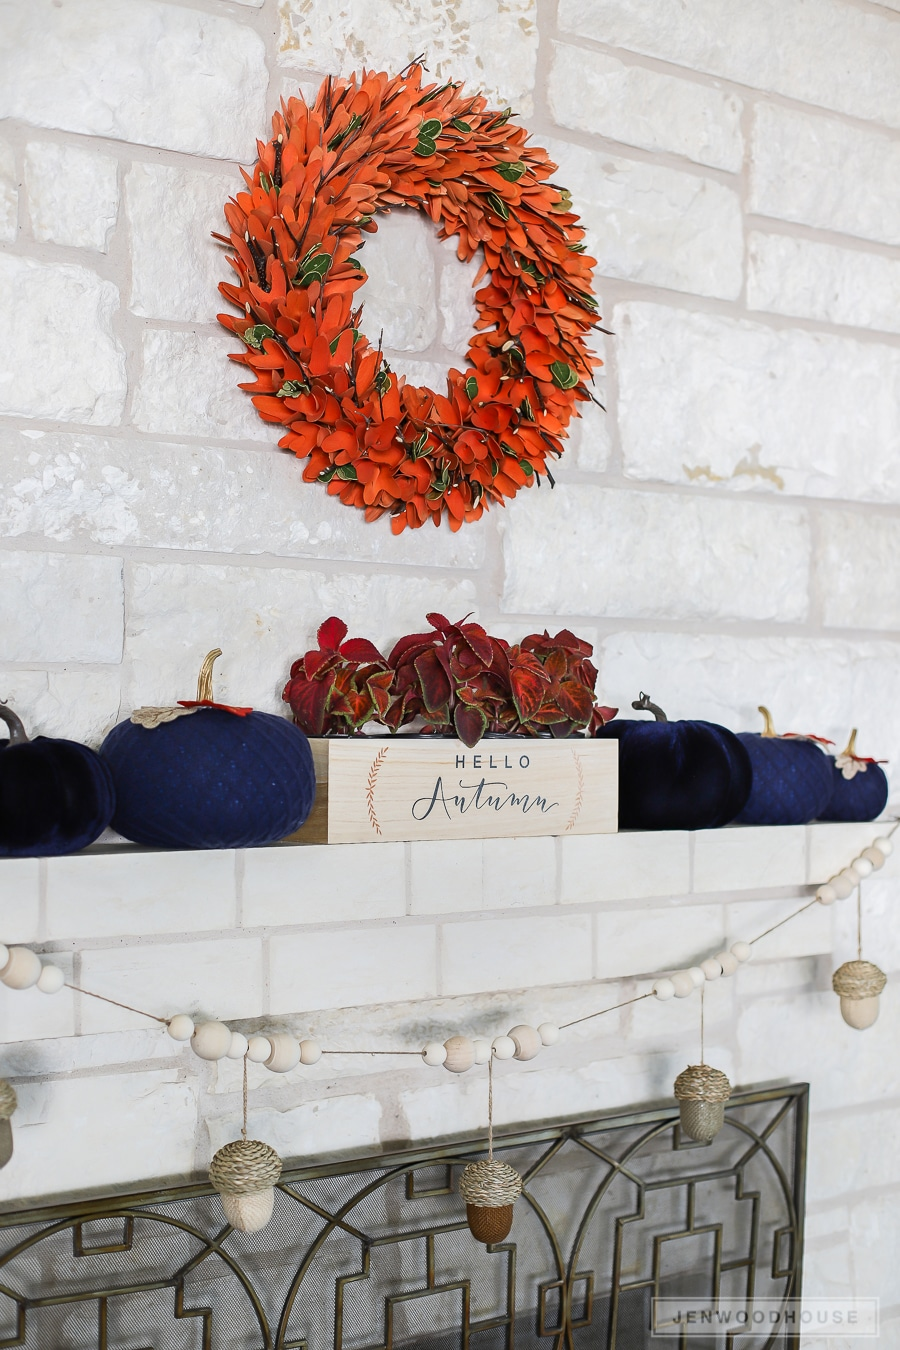 How to decorate your mantel for Fall Autumn